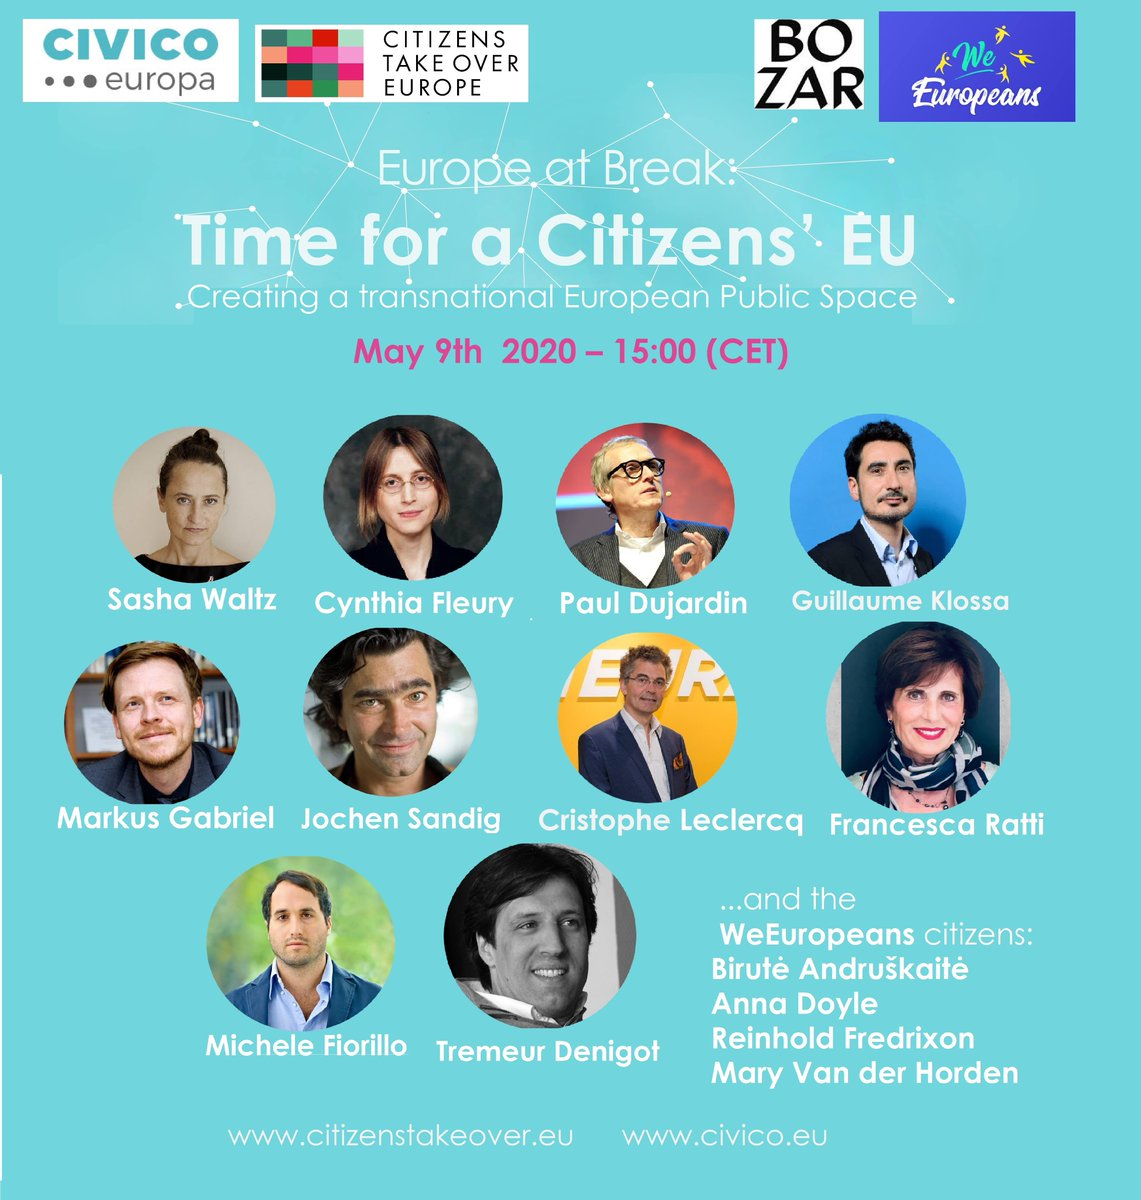 How European democracy can be more inclusive and involve citizens into more participatory forms?   Join the online dialogue via https://t.co/rIHcmJn0mj      #TakeOverEurope #9May #EuropeDay https://t.co/isbMluFf8B